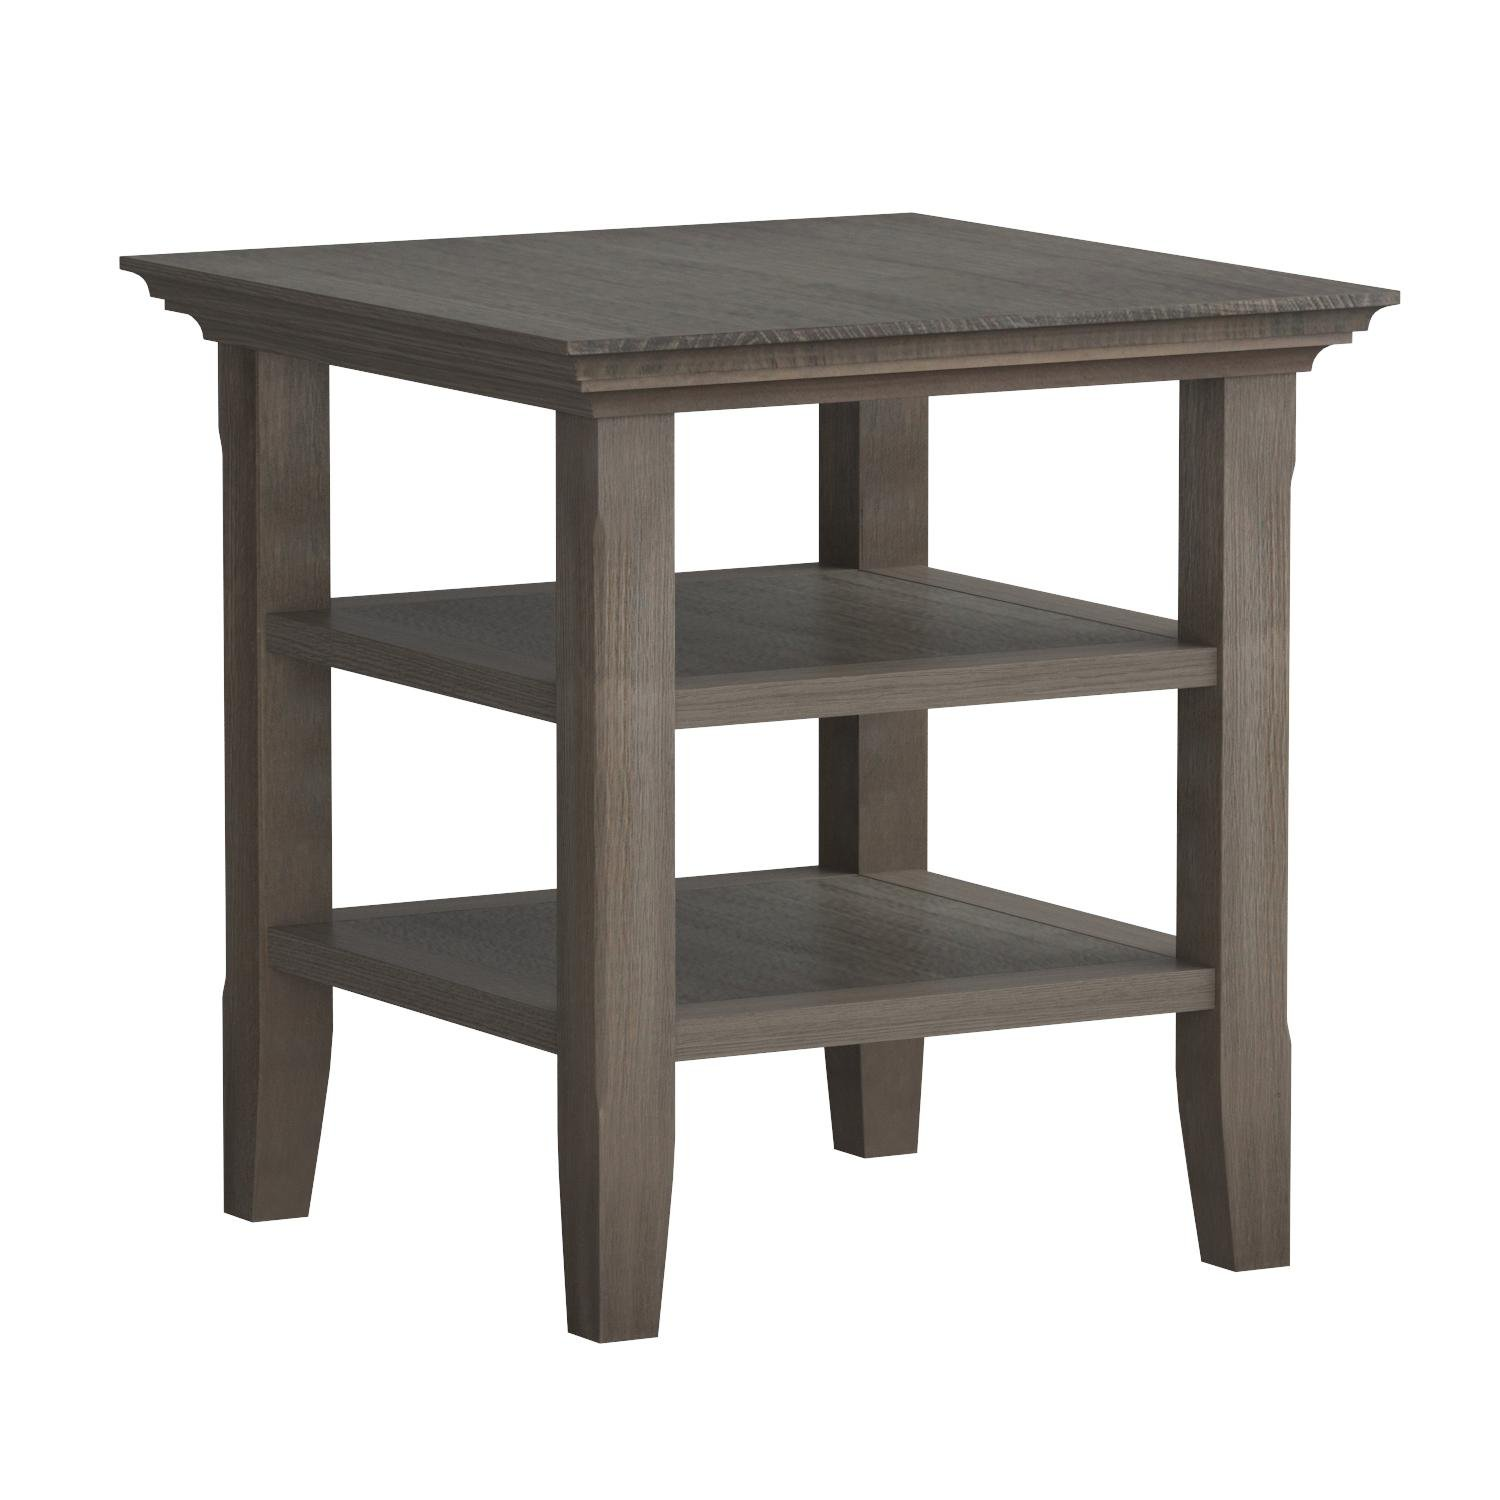 Simpli Home Acadian Solid Wood End Side Table, Farmhouse Grey by Simpli Home (Image #6)